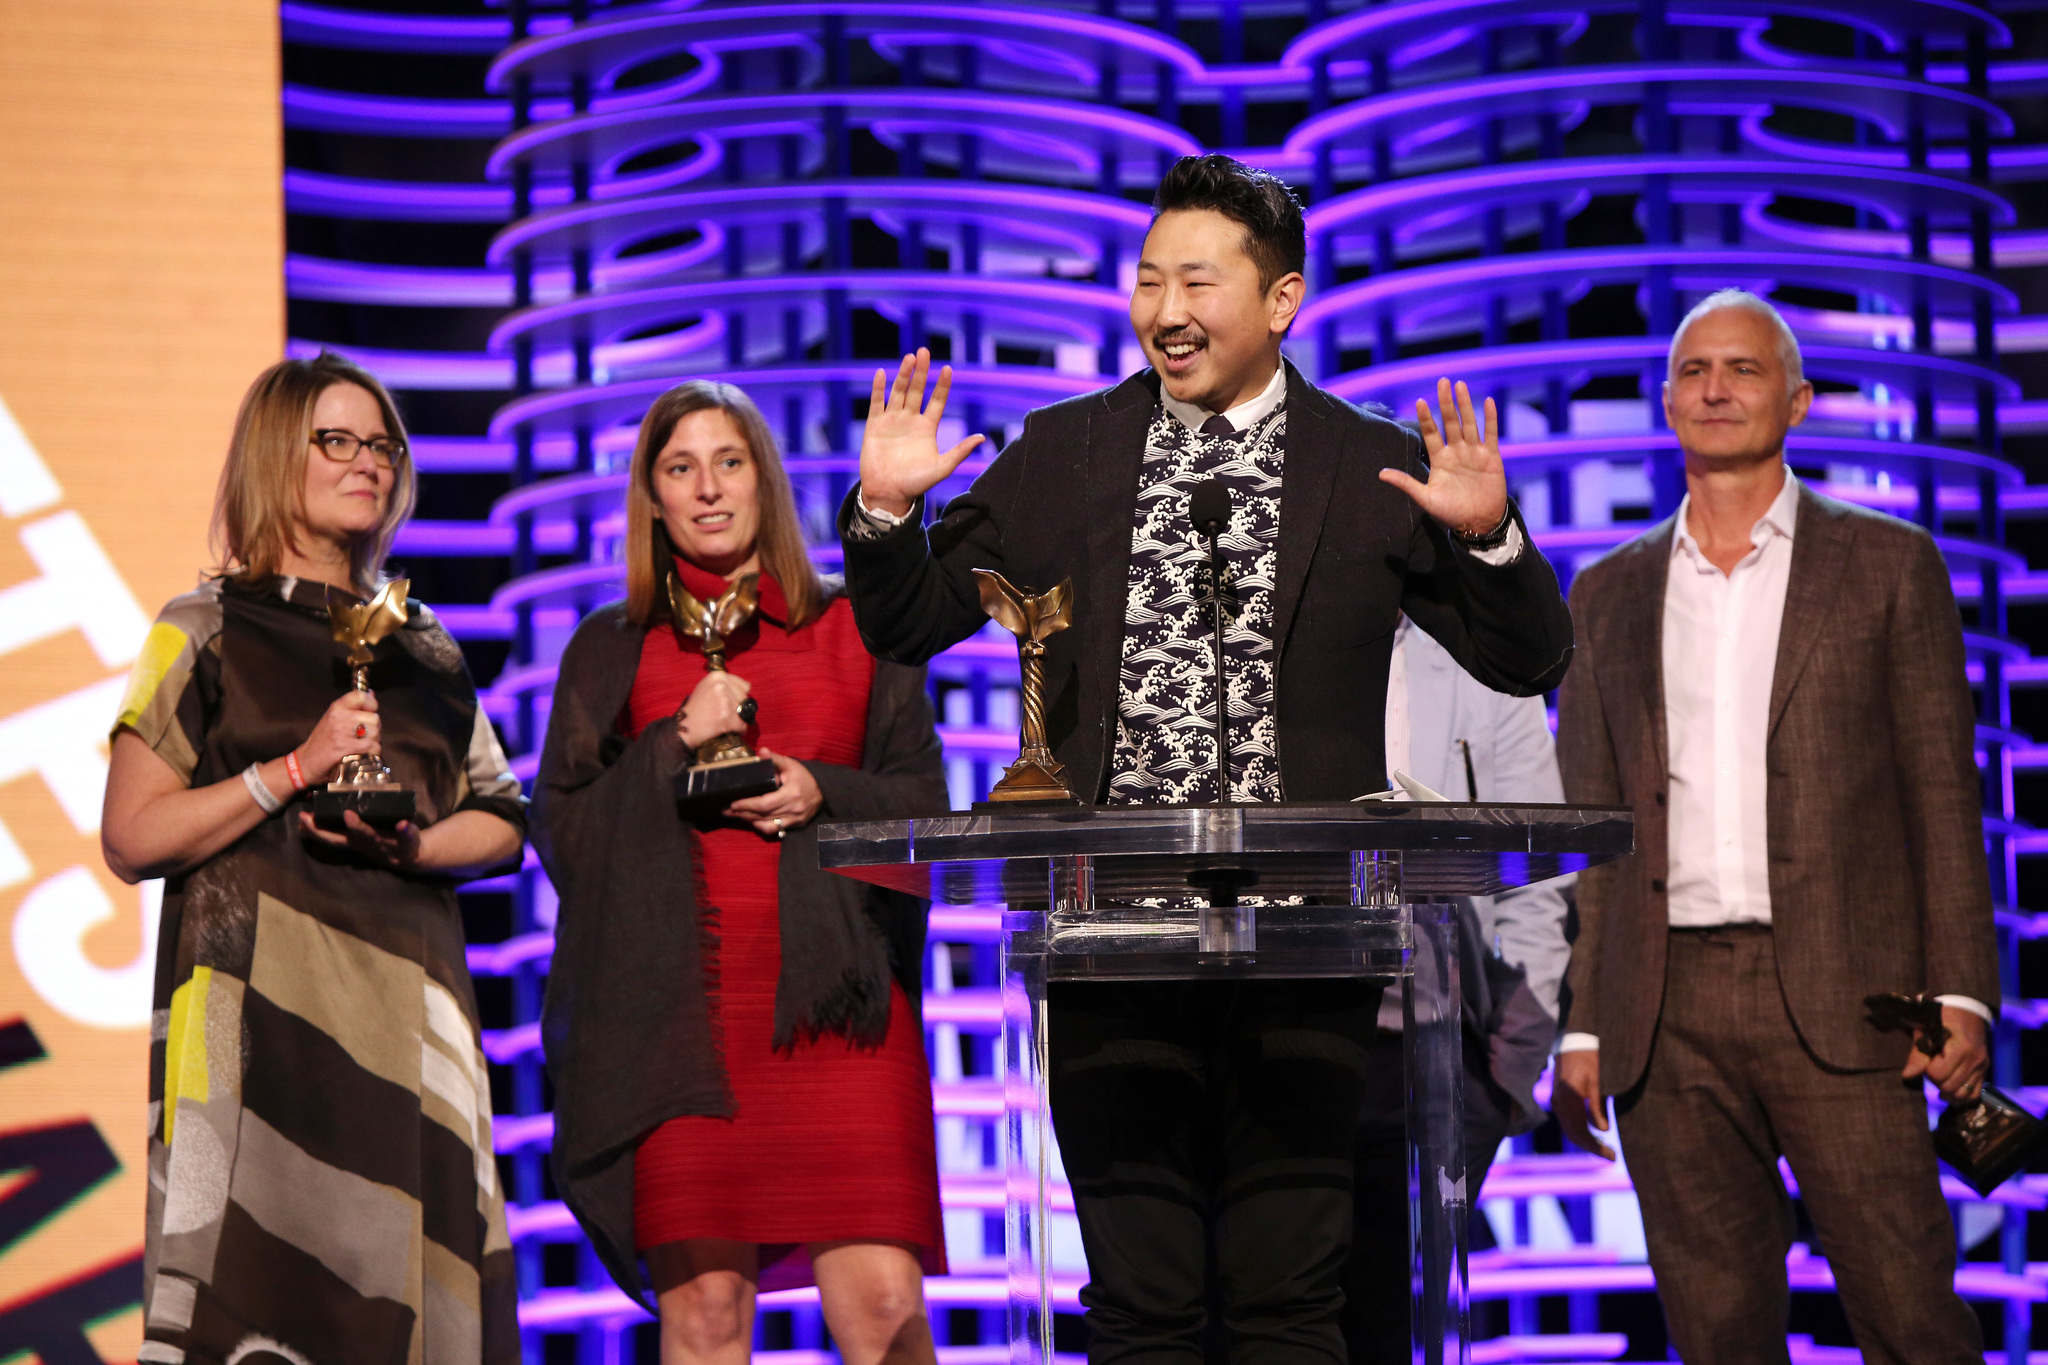 David Ariniello, Kelly Thomas, Andrew Ahn, and Giulia Caruso at an event for 32nd Film Independent Spirit Awards (2017)